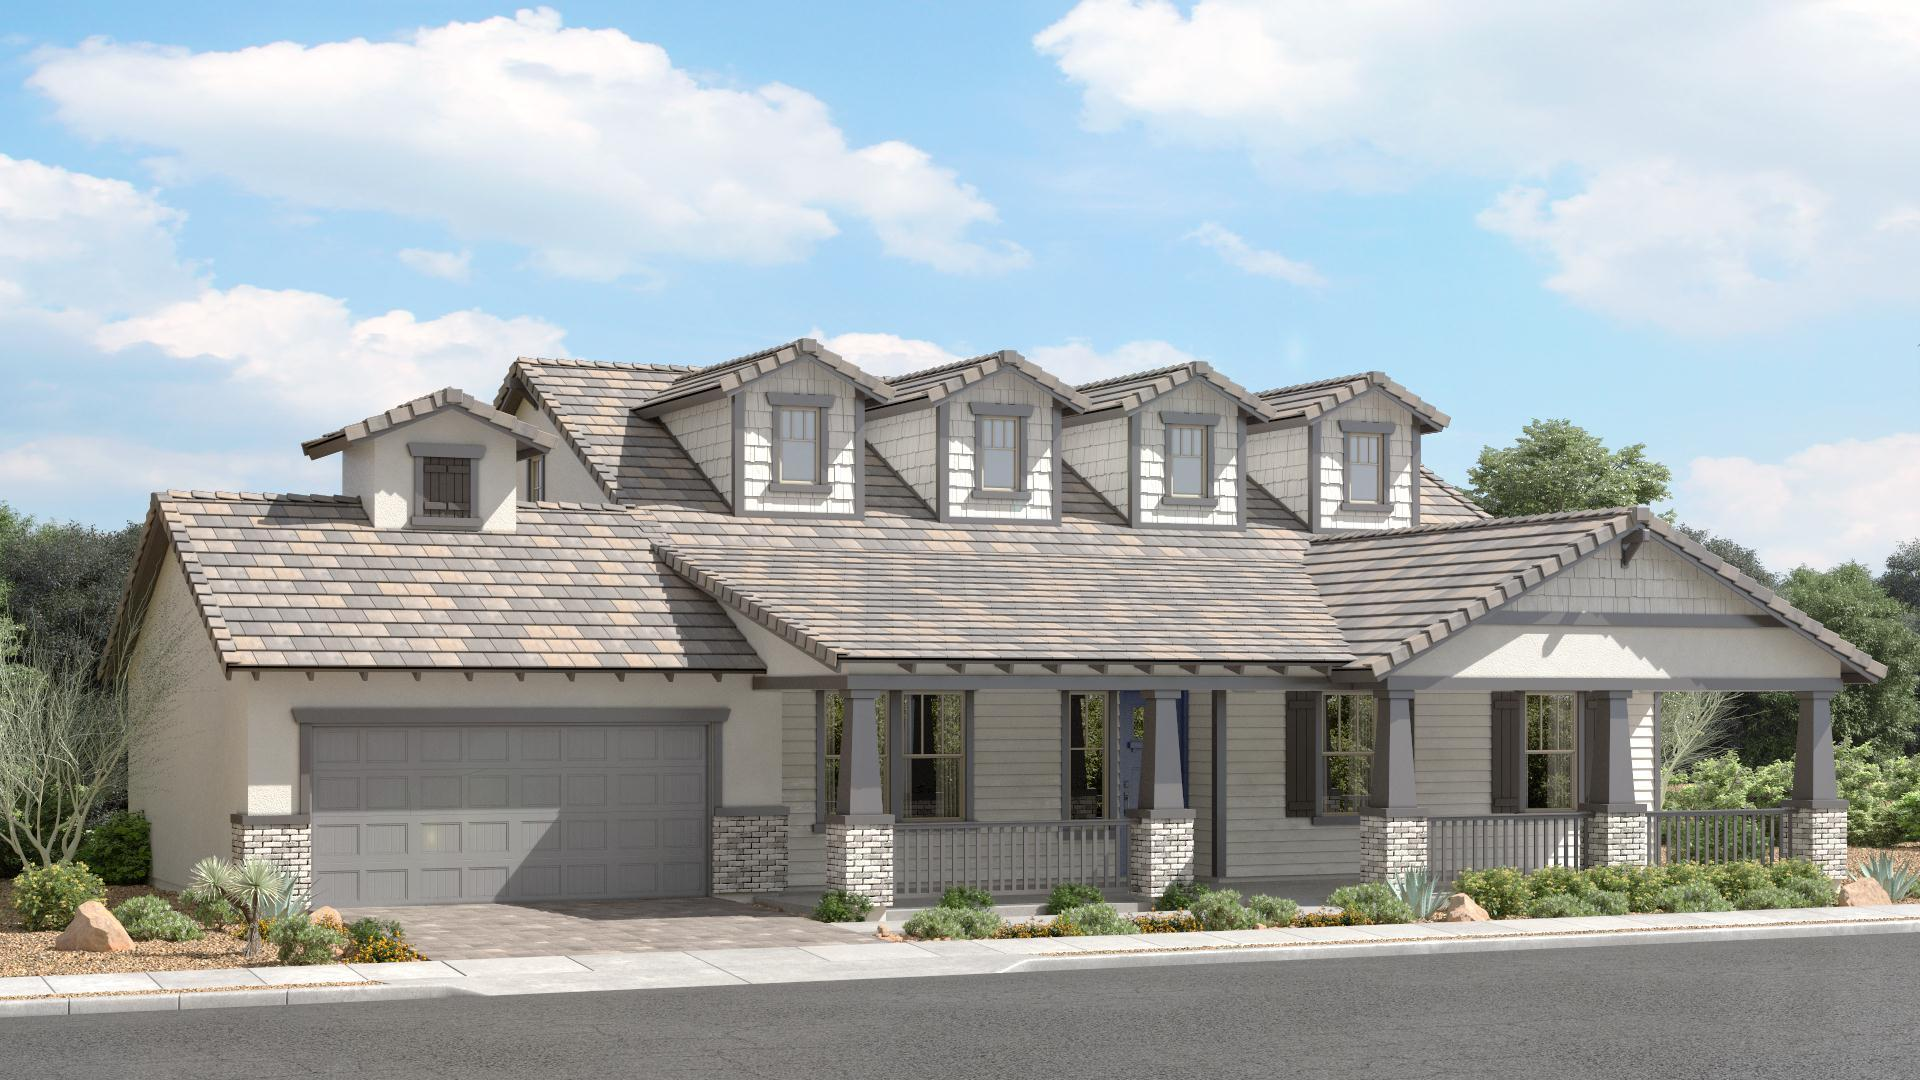 Exterior featured in The Diamond | Plan 65.2280 By Brown Homes AZ in Prescott, AZ